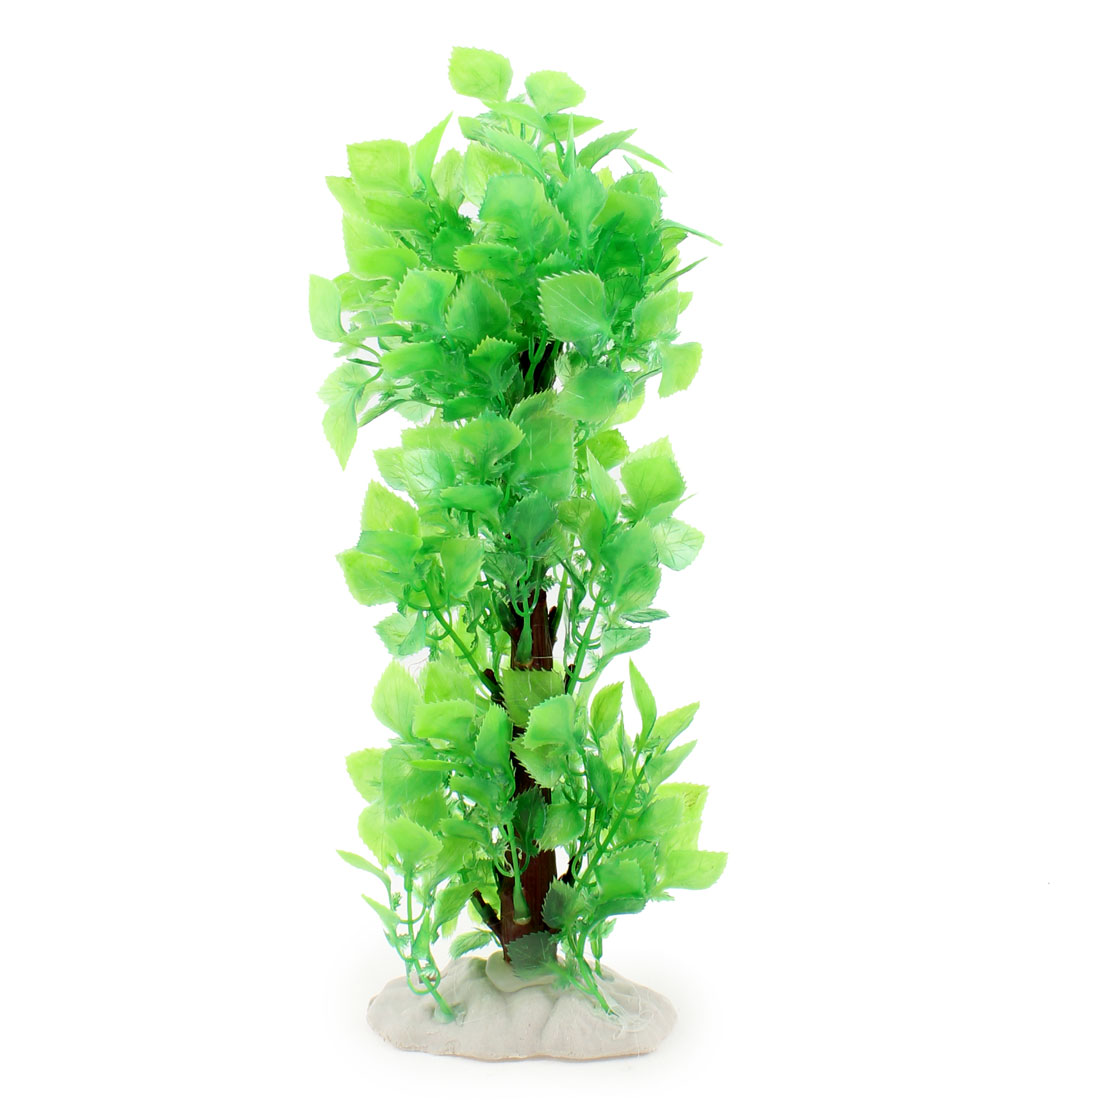 "Fish Tank Green Emulational Underwater Landscaping Plant 11.0"" Height"